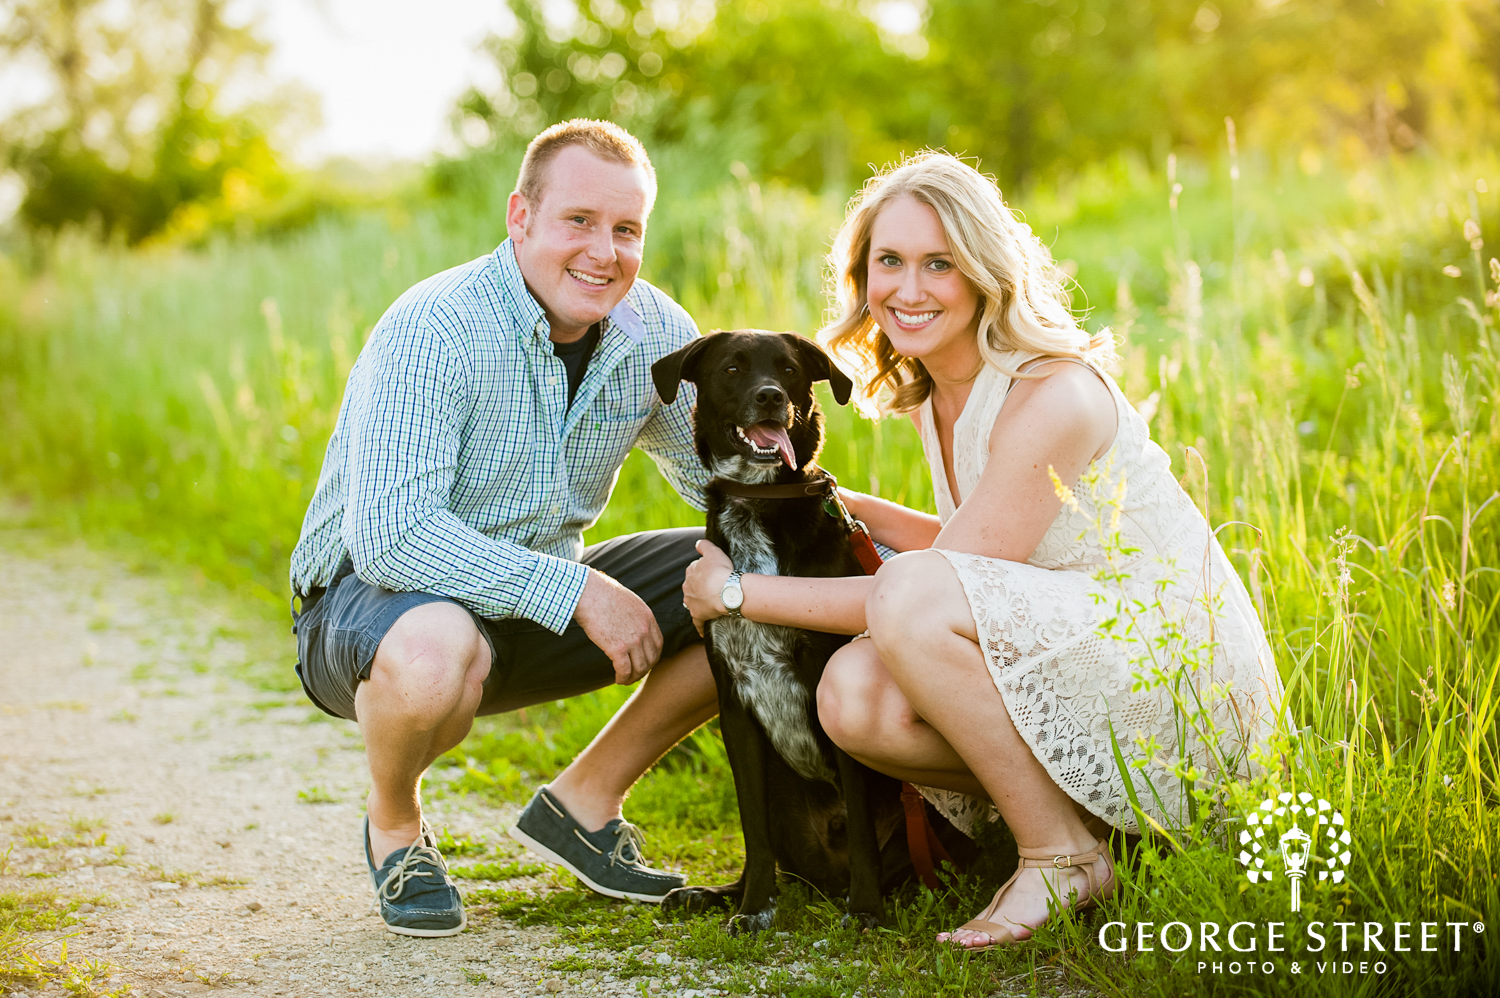 4 Ways to Include Your Favorite Furry Friend in Your Big Day